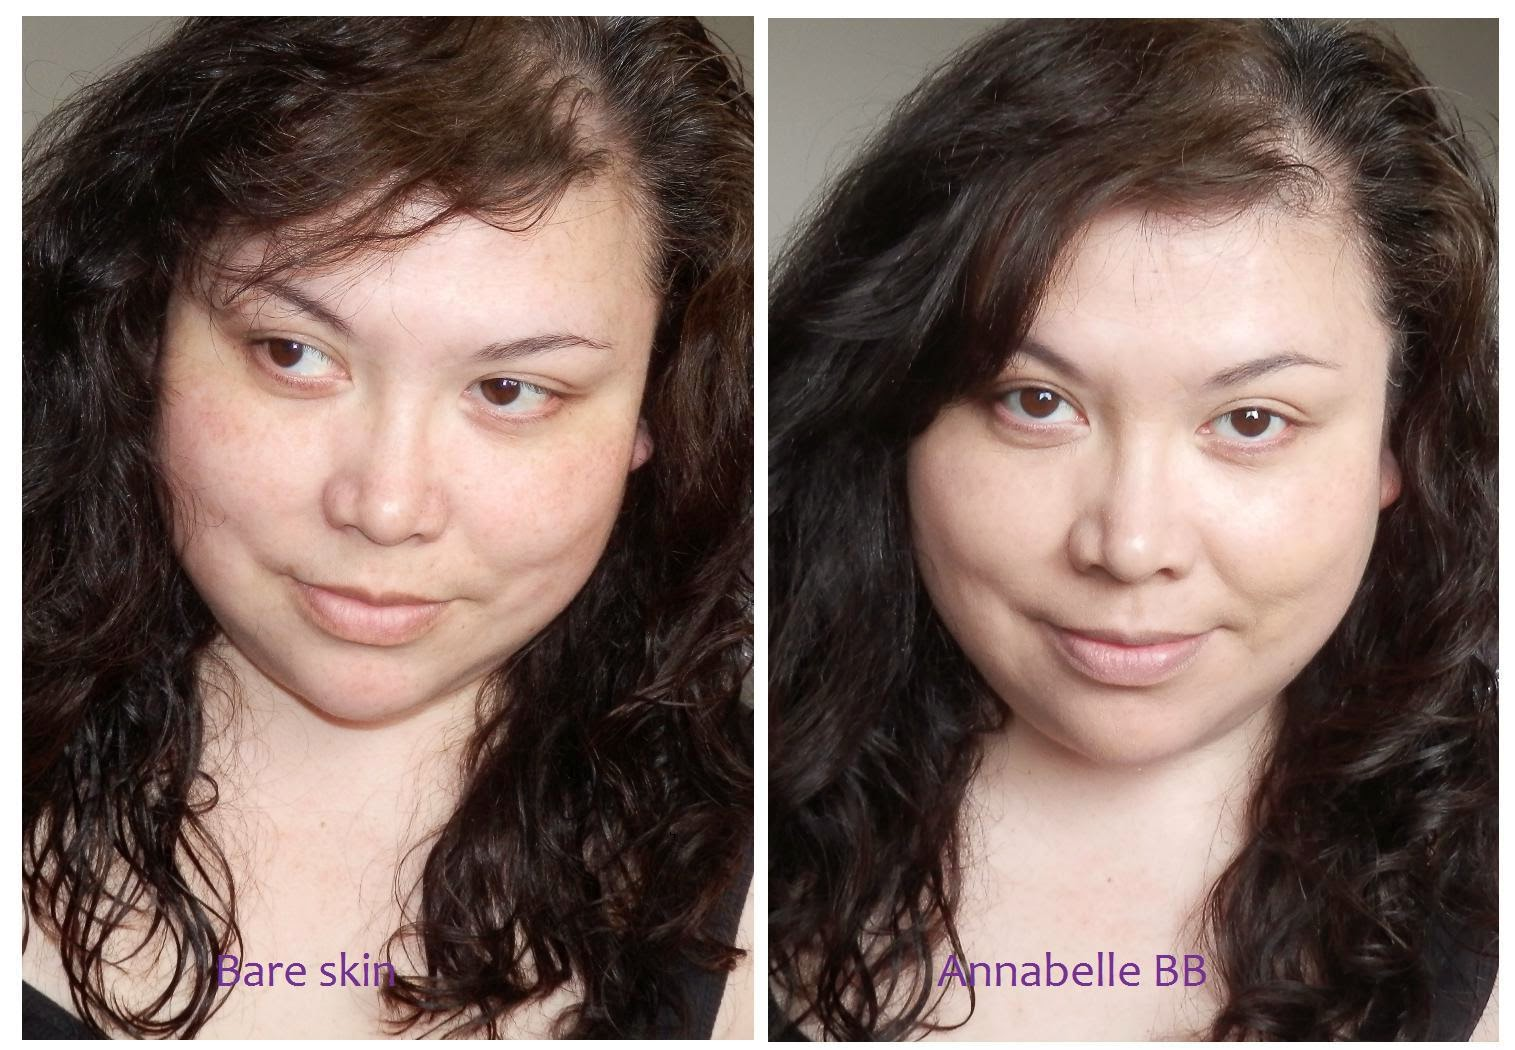 Annabelle BB Cream | Smashbox BB Cream